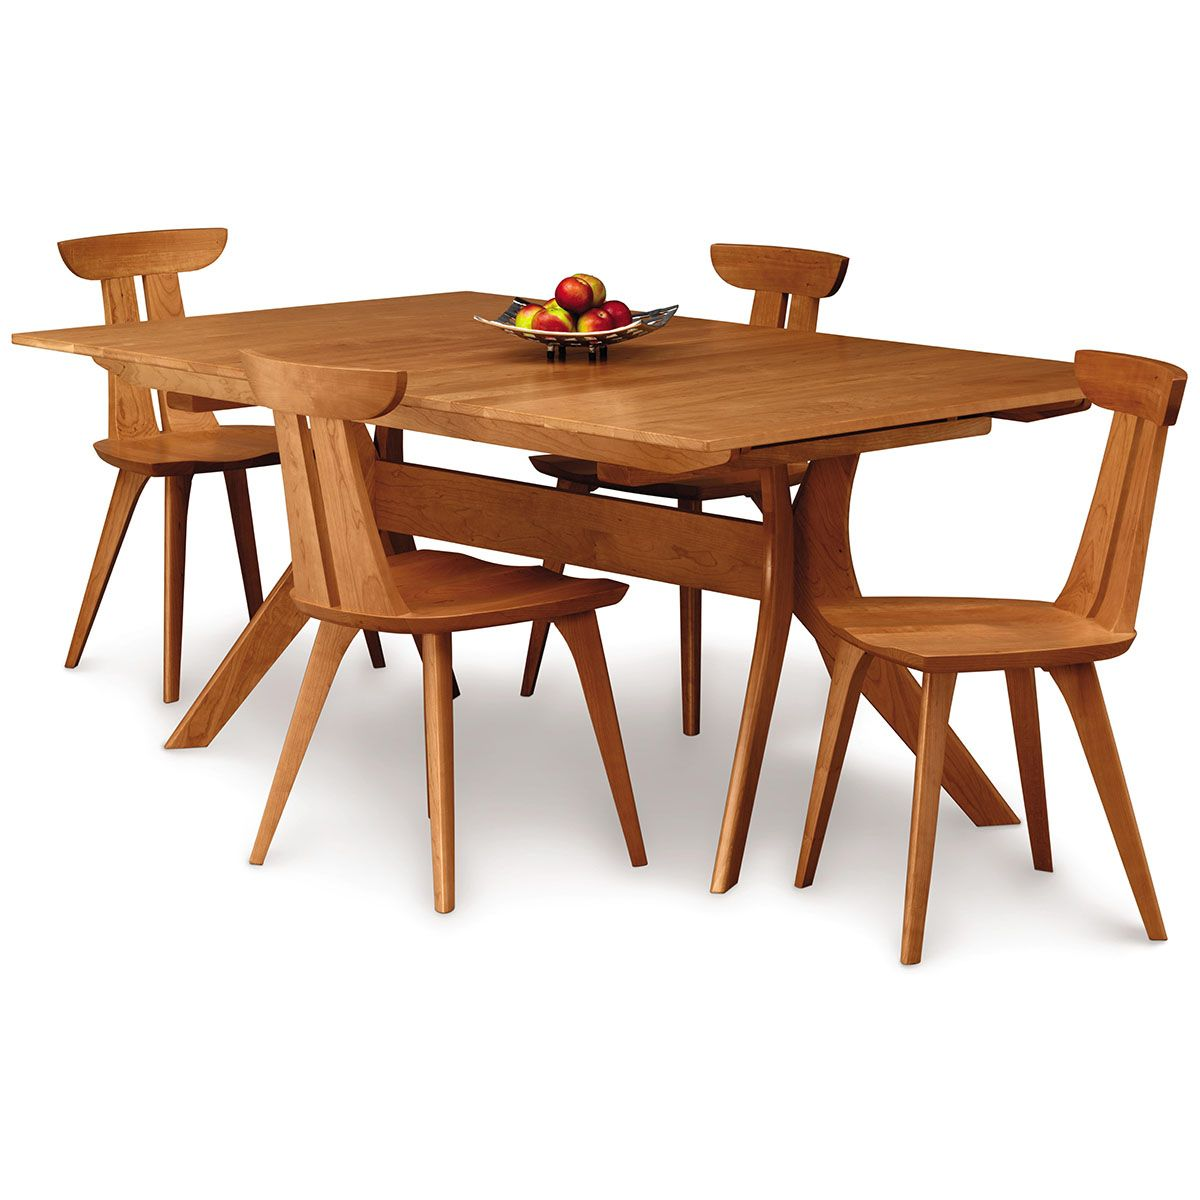 Copeland Audrey 42 X 72 Extension Table With Easystow And Leaf Storage 6